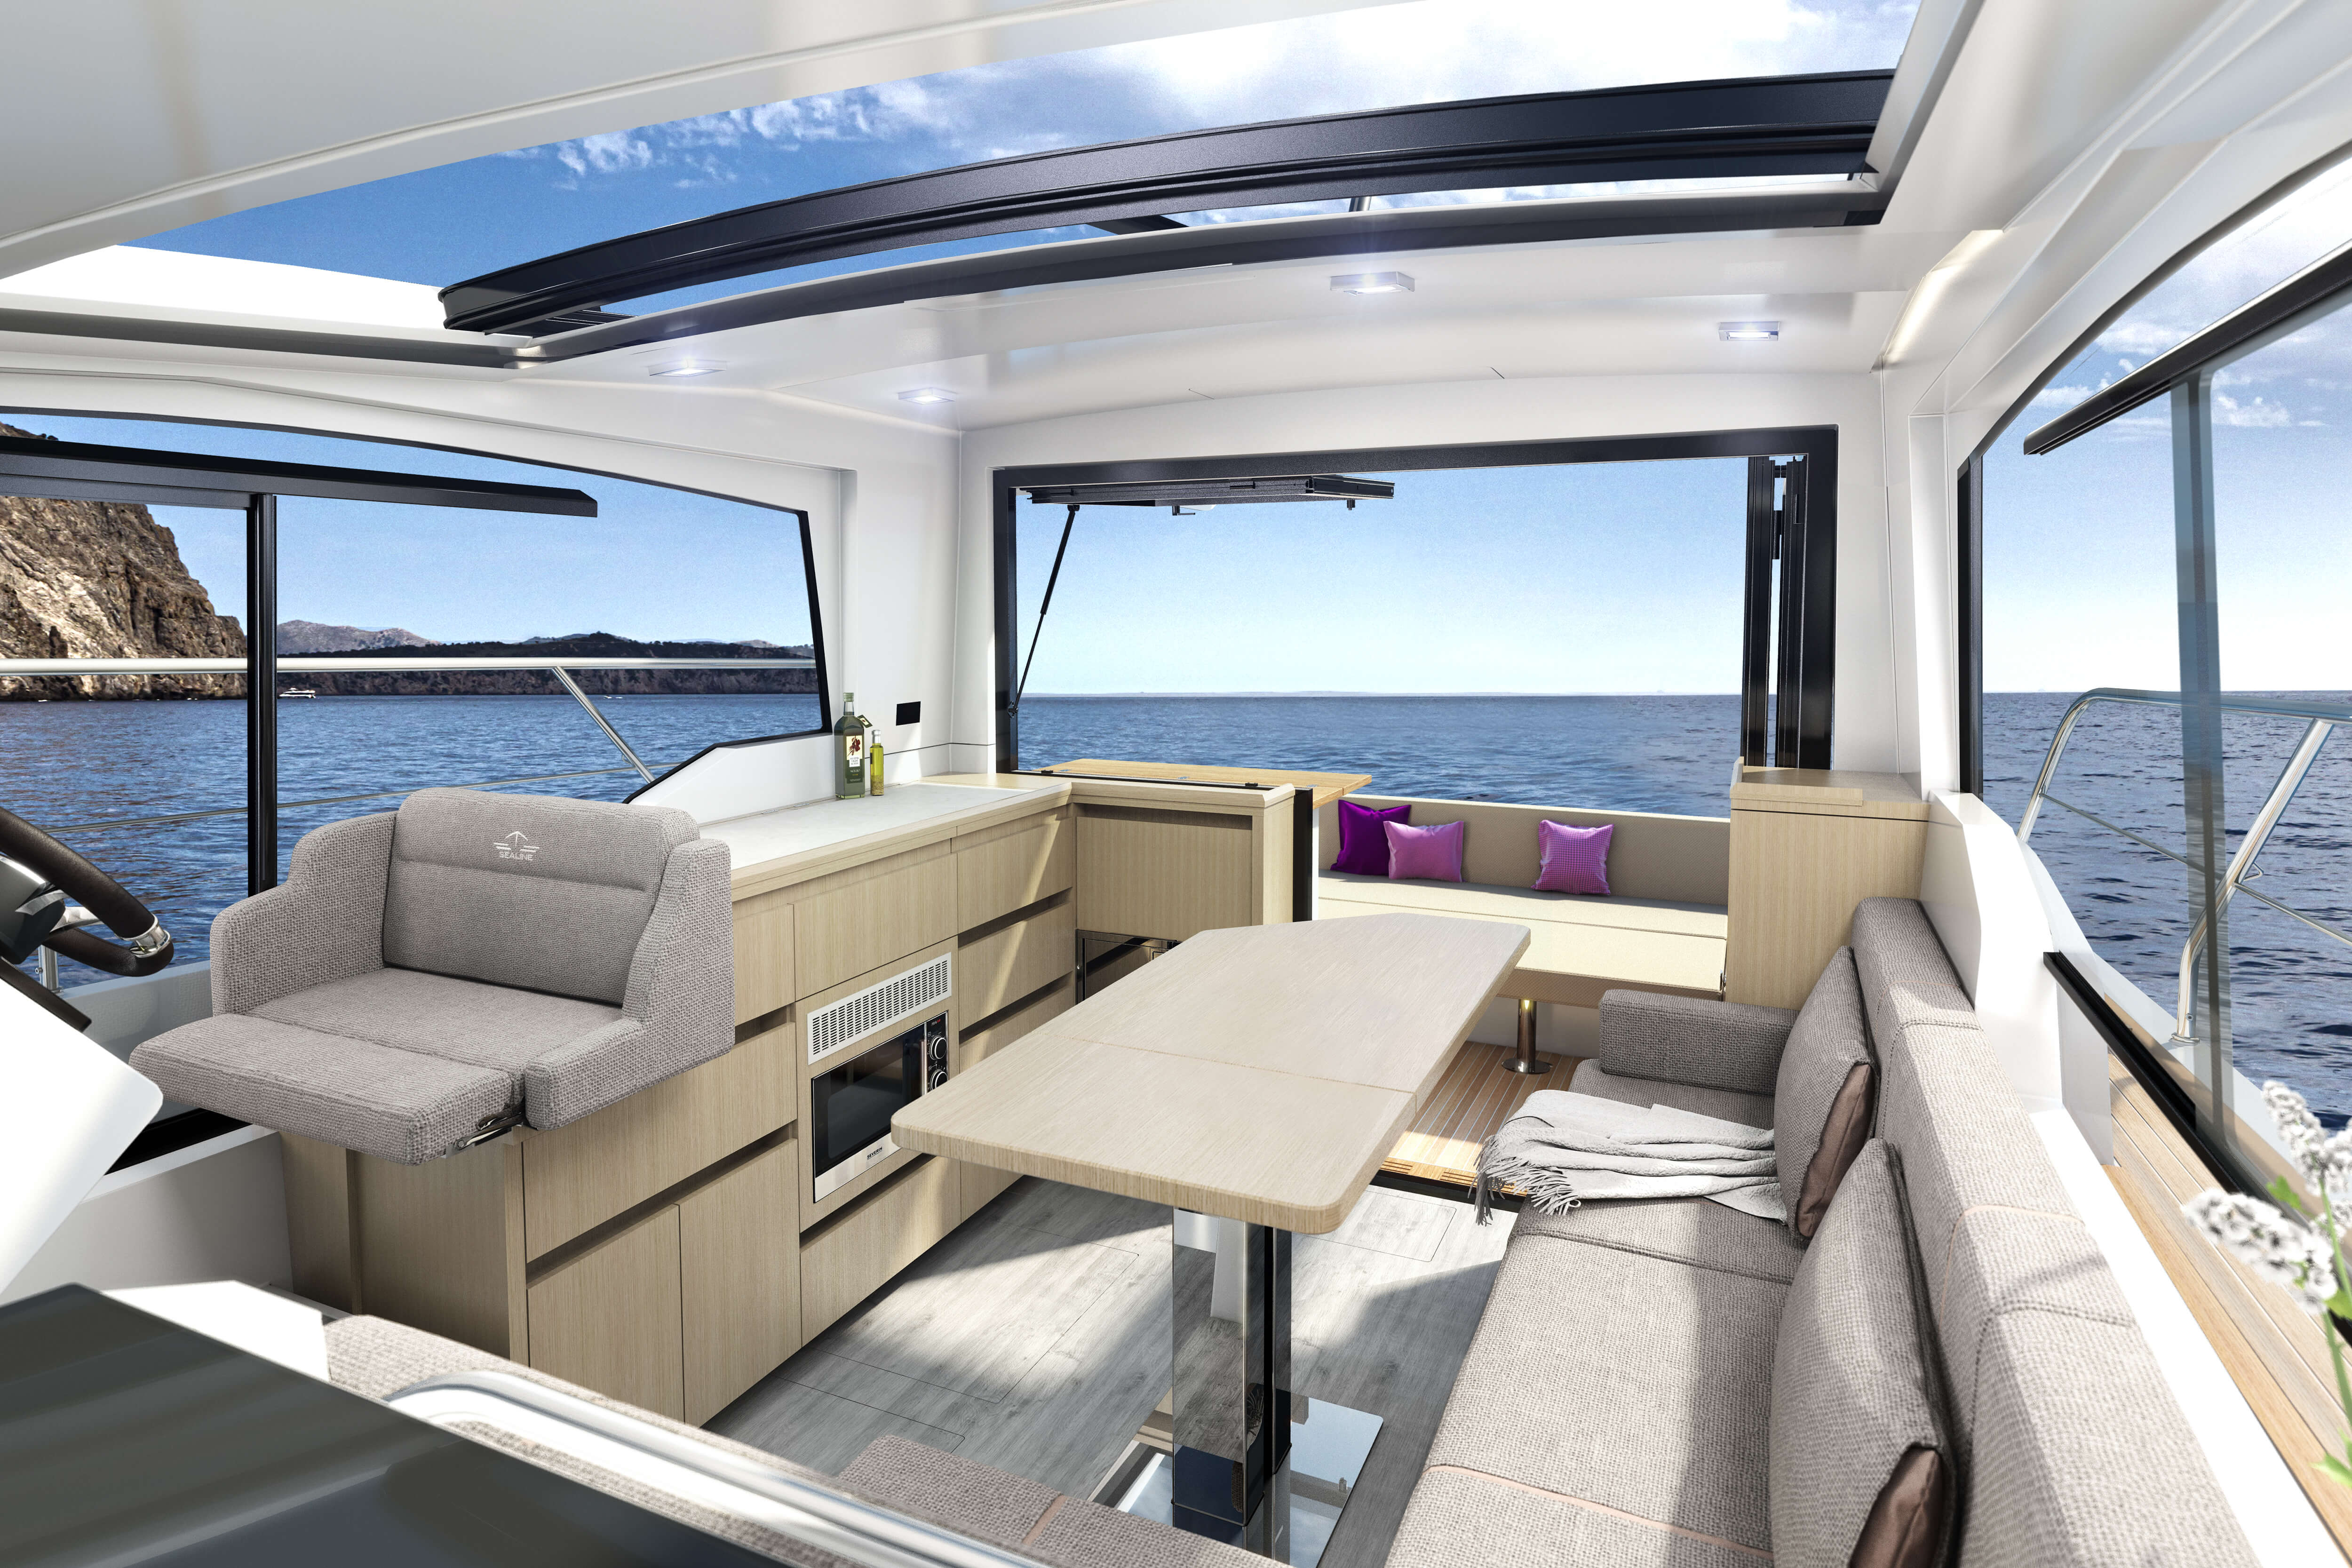 Sealine C335 saloon | Large windows and the bifold door provide abundant natural light - as well as wonderful views to the maritime scenery beyond. | Sealine